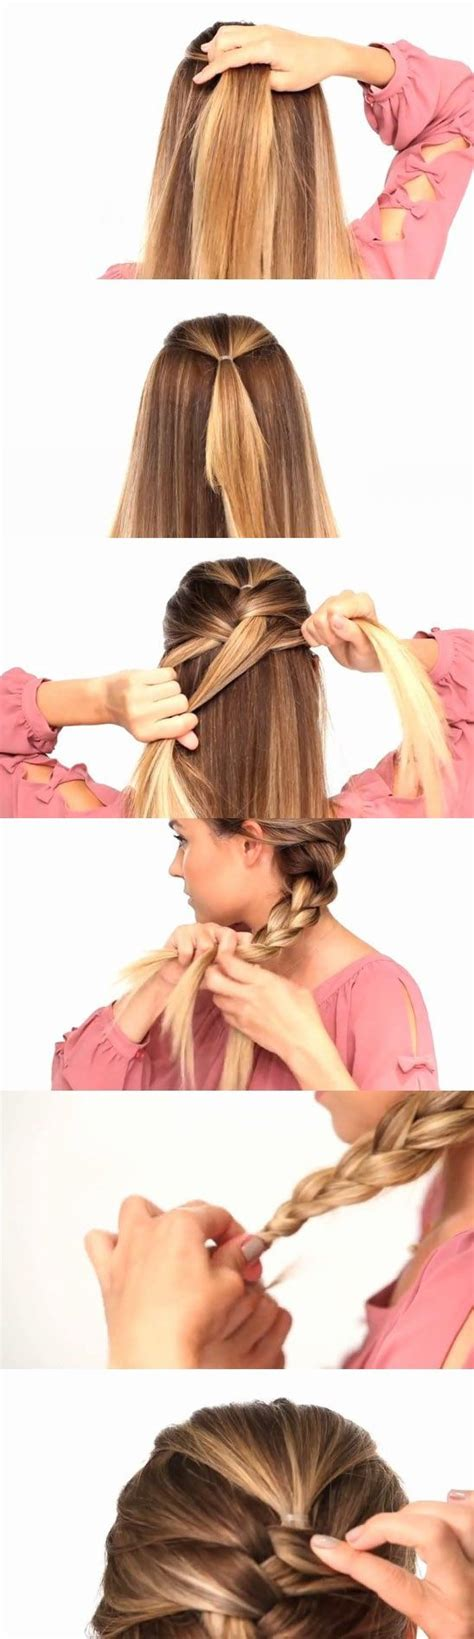 how to do braid own hair yourself with yarn for older women easy way to french braid your own hair hair do s for